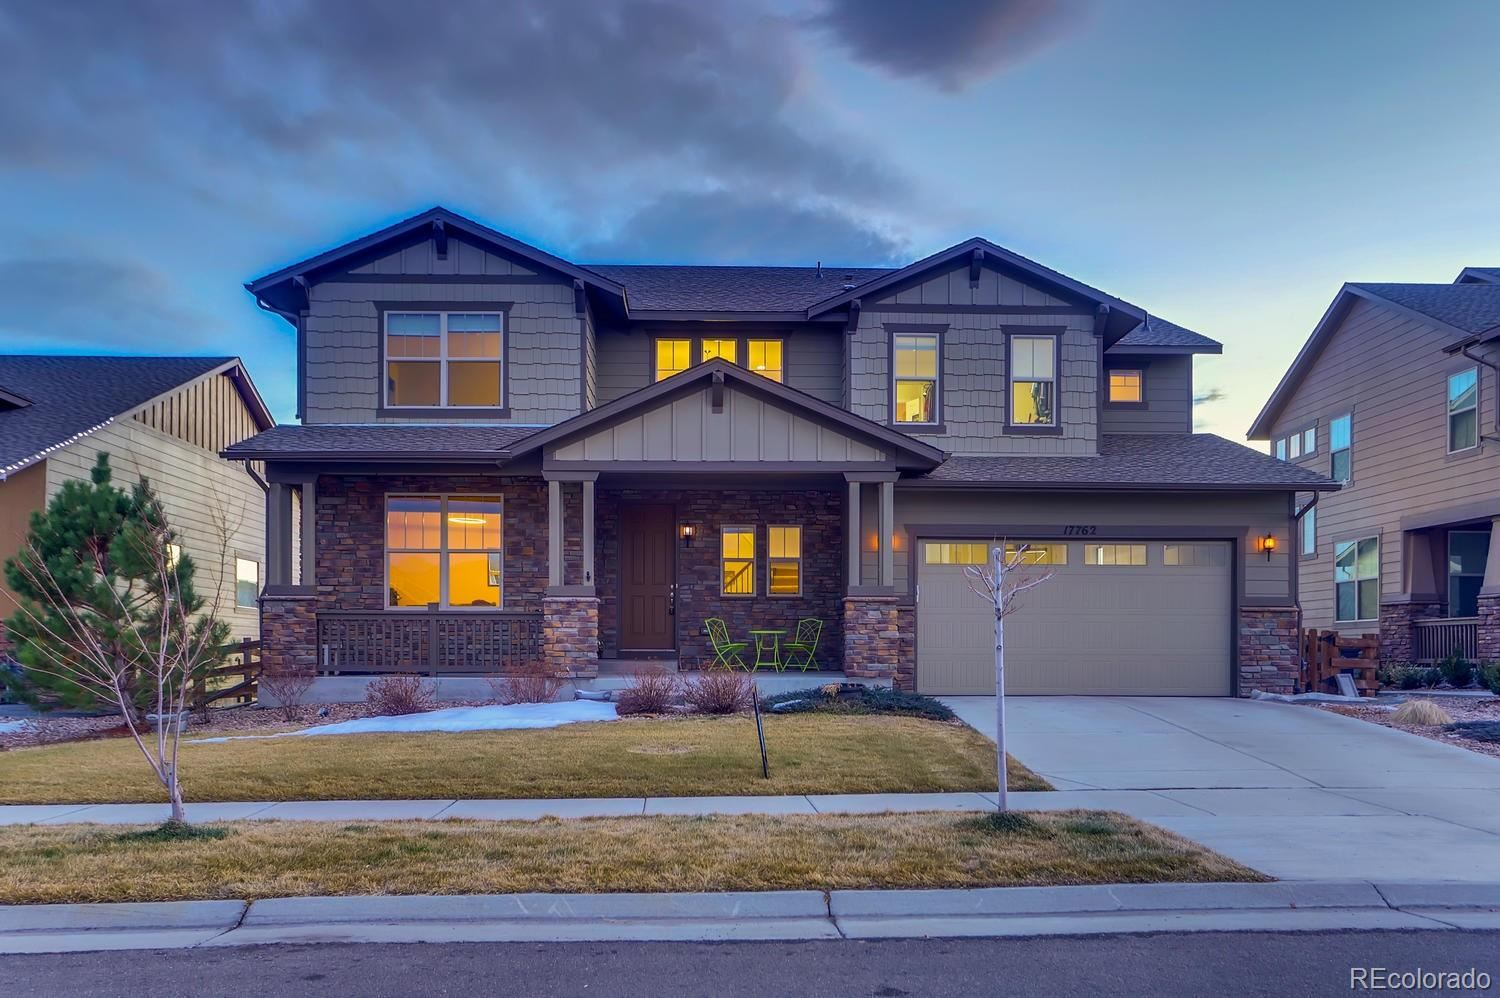 17762 W 83rd Place, Arvada, CO 80007 - #: 4767152